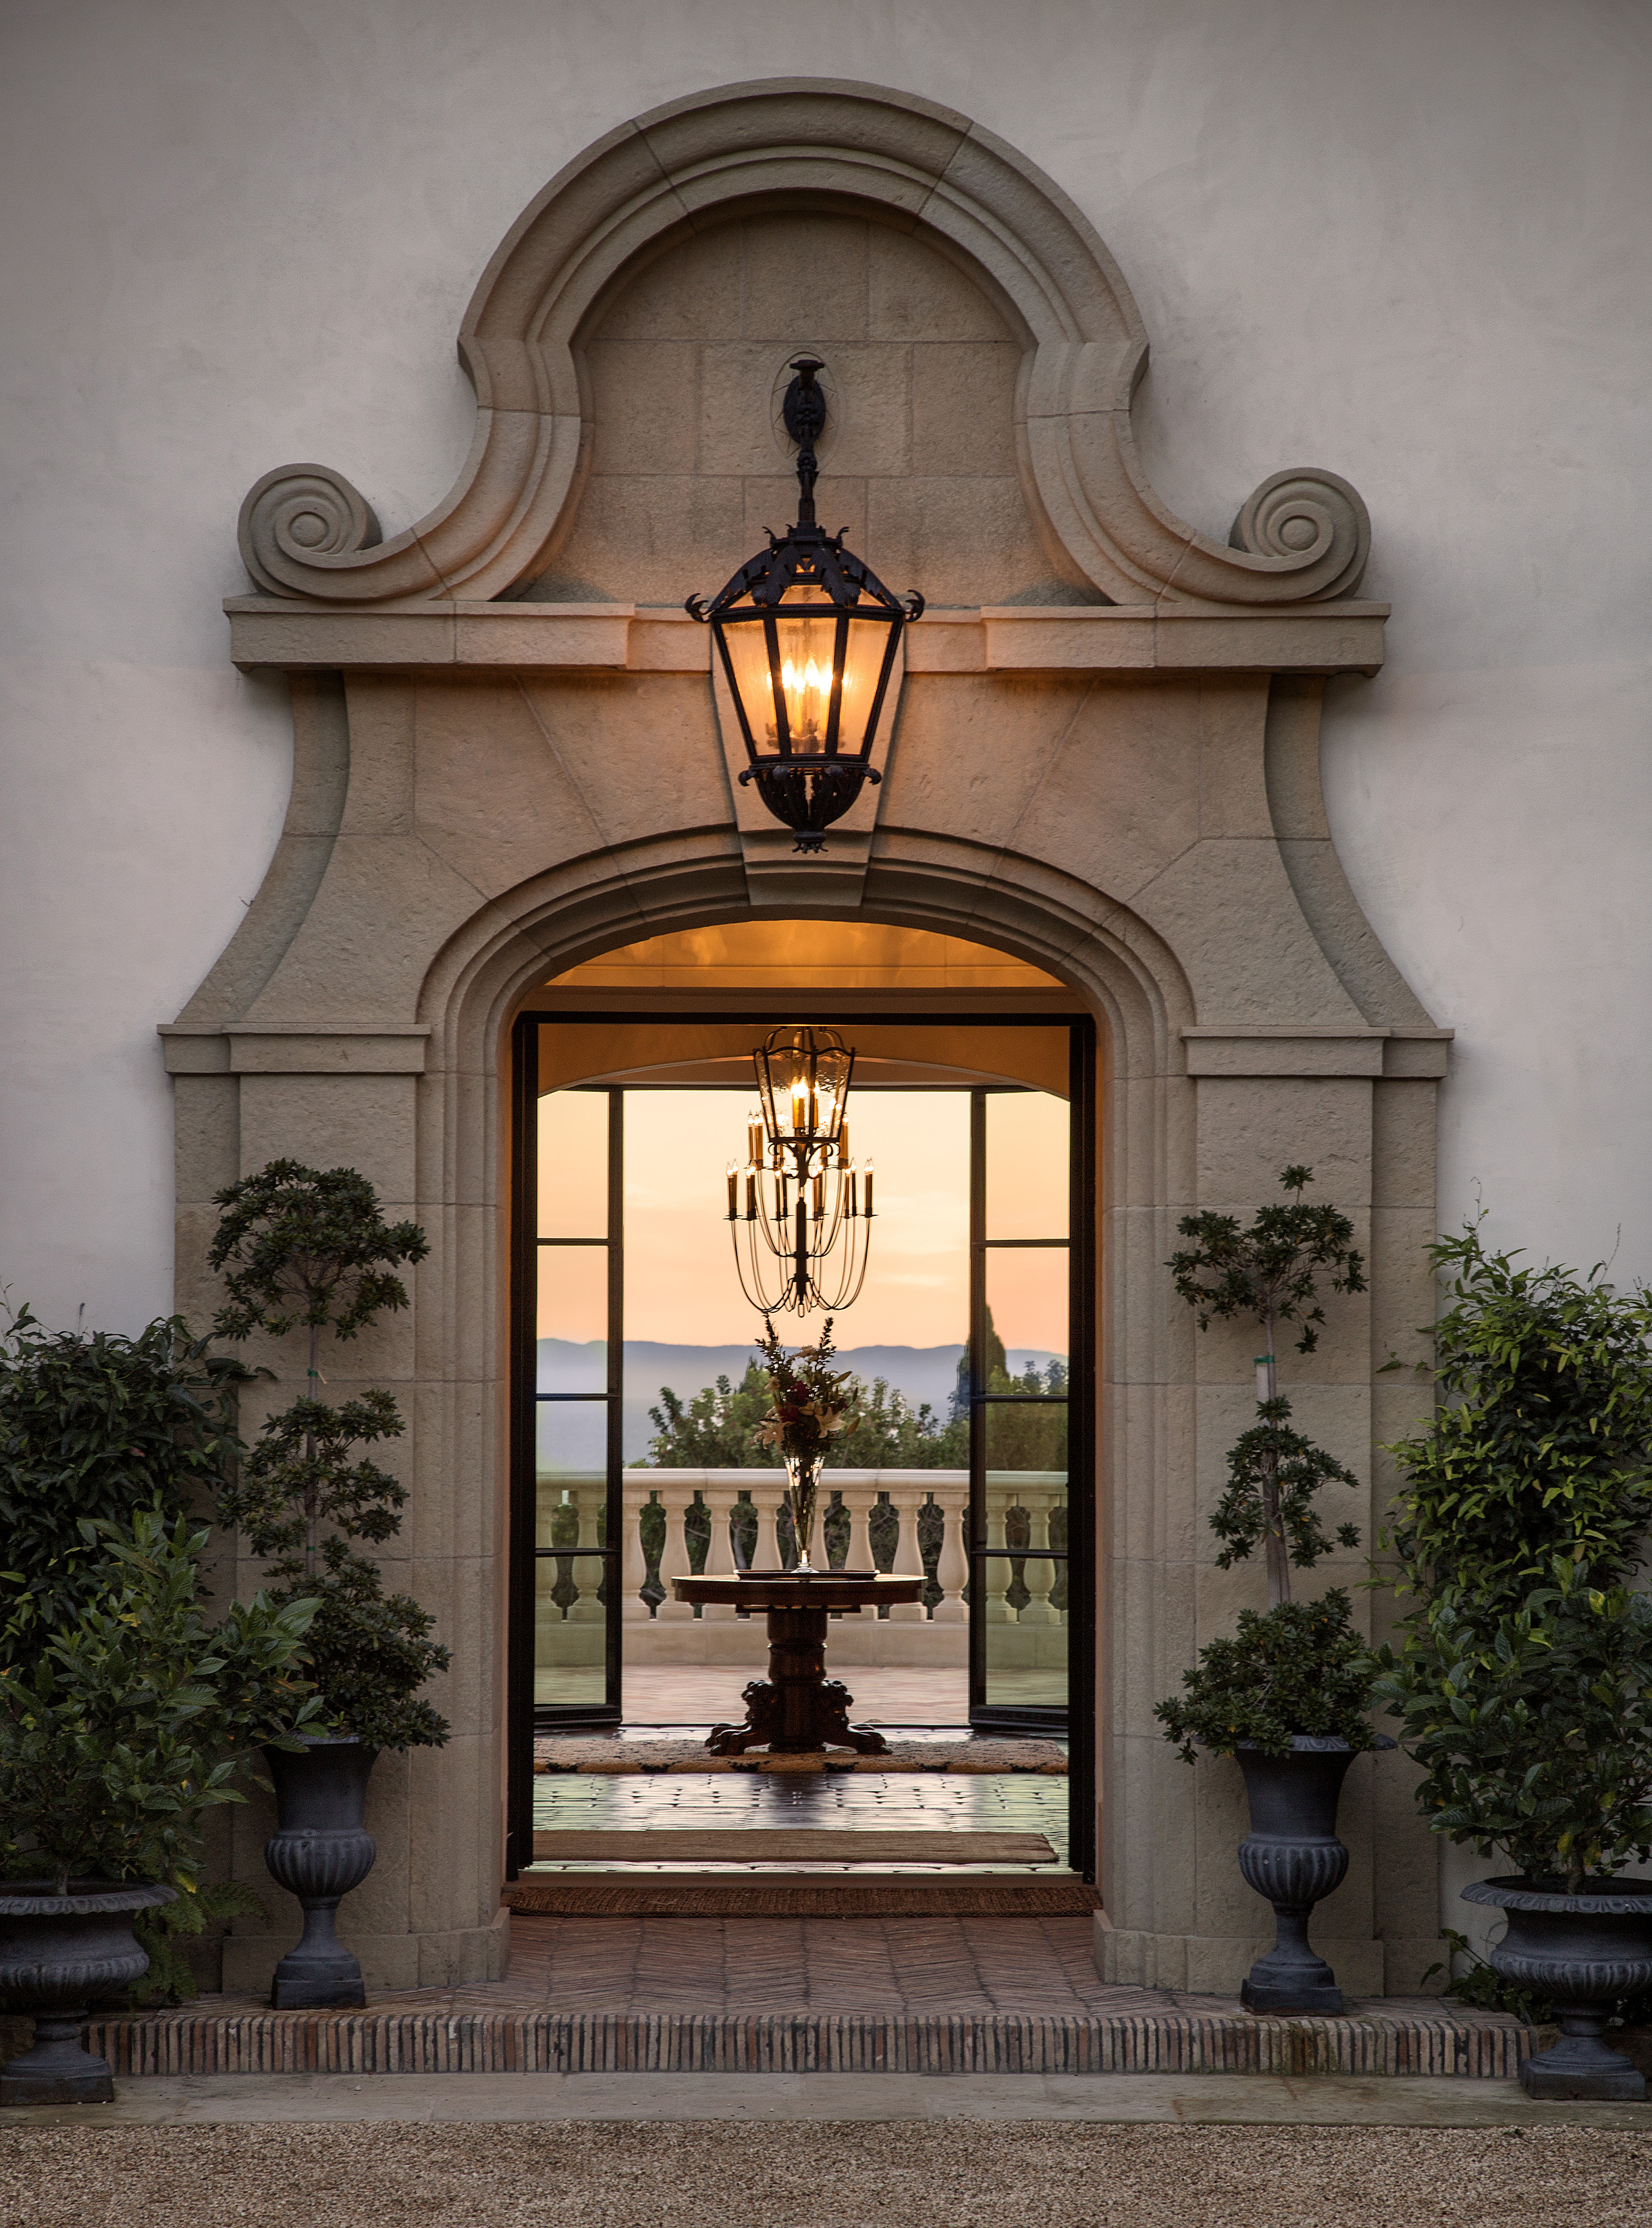 Entryway at Dusk.jpg